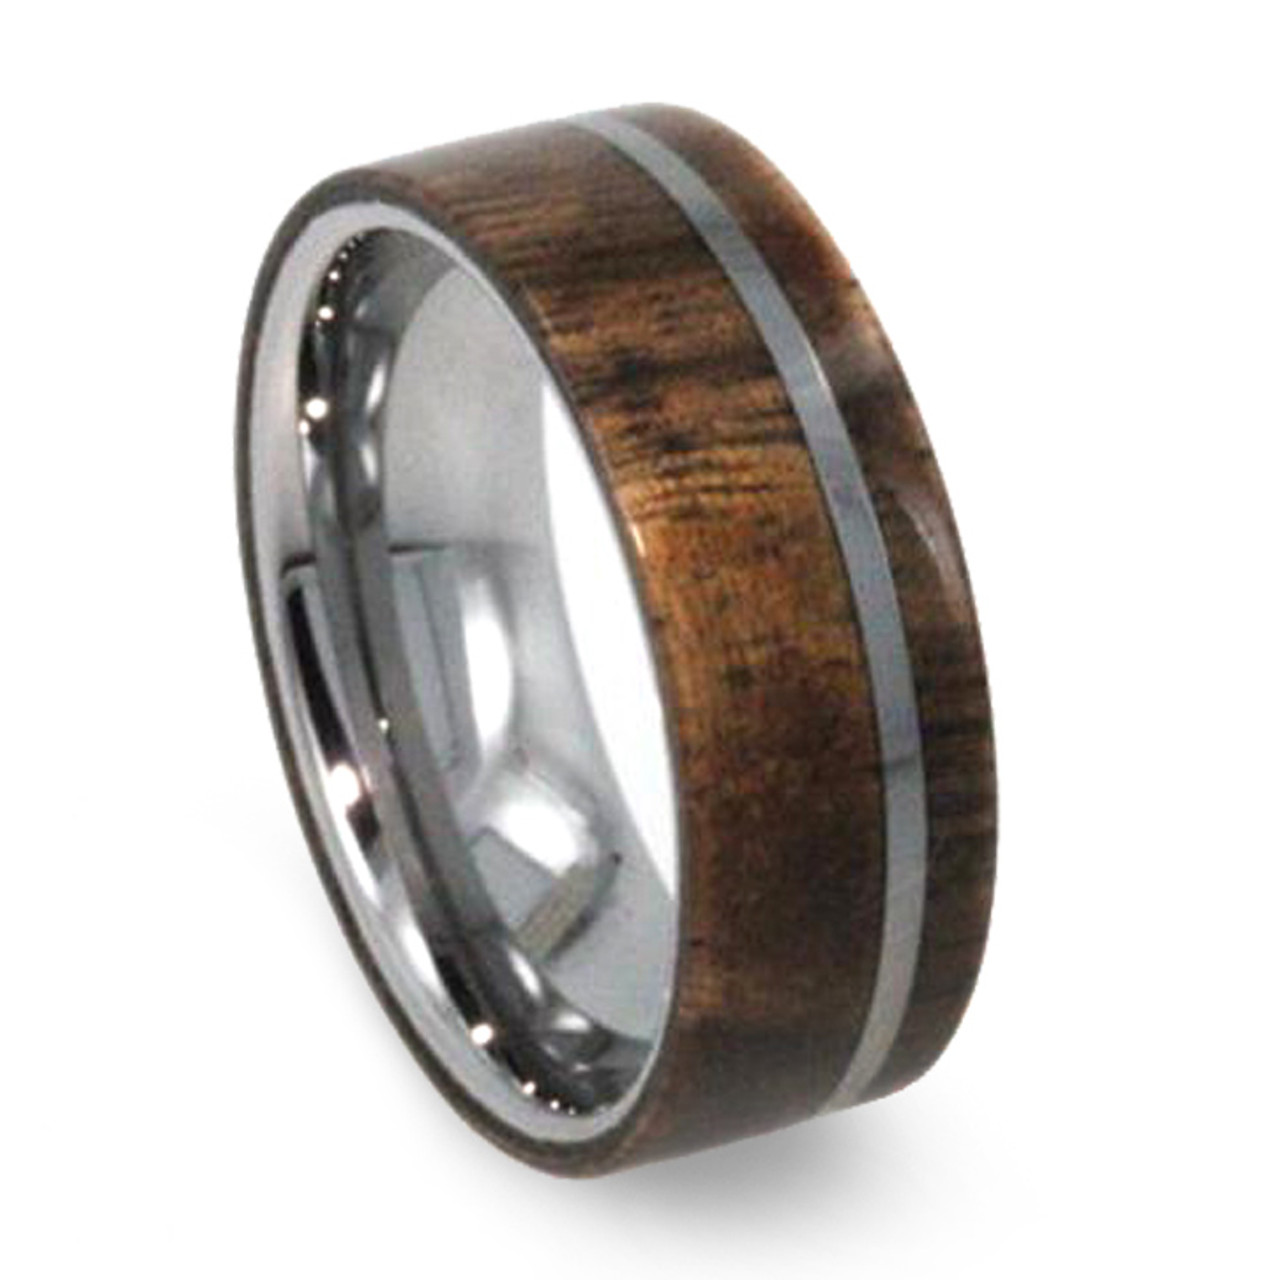 mens carbidetungsten rings band inlay bandtungsten black dome media edge wedding wood ring carbide tungsten